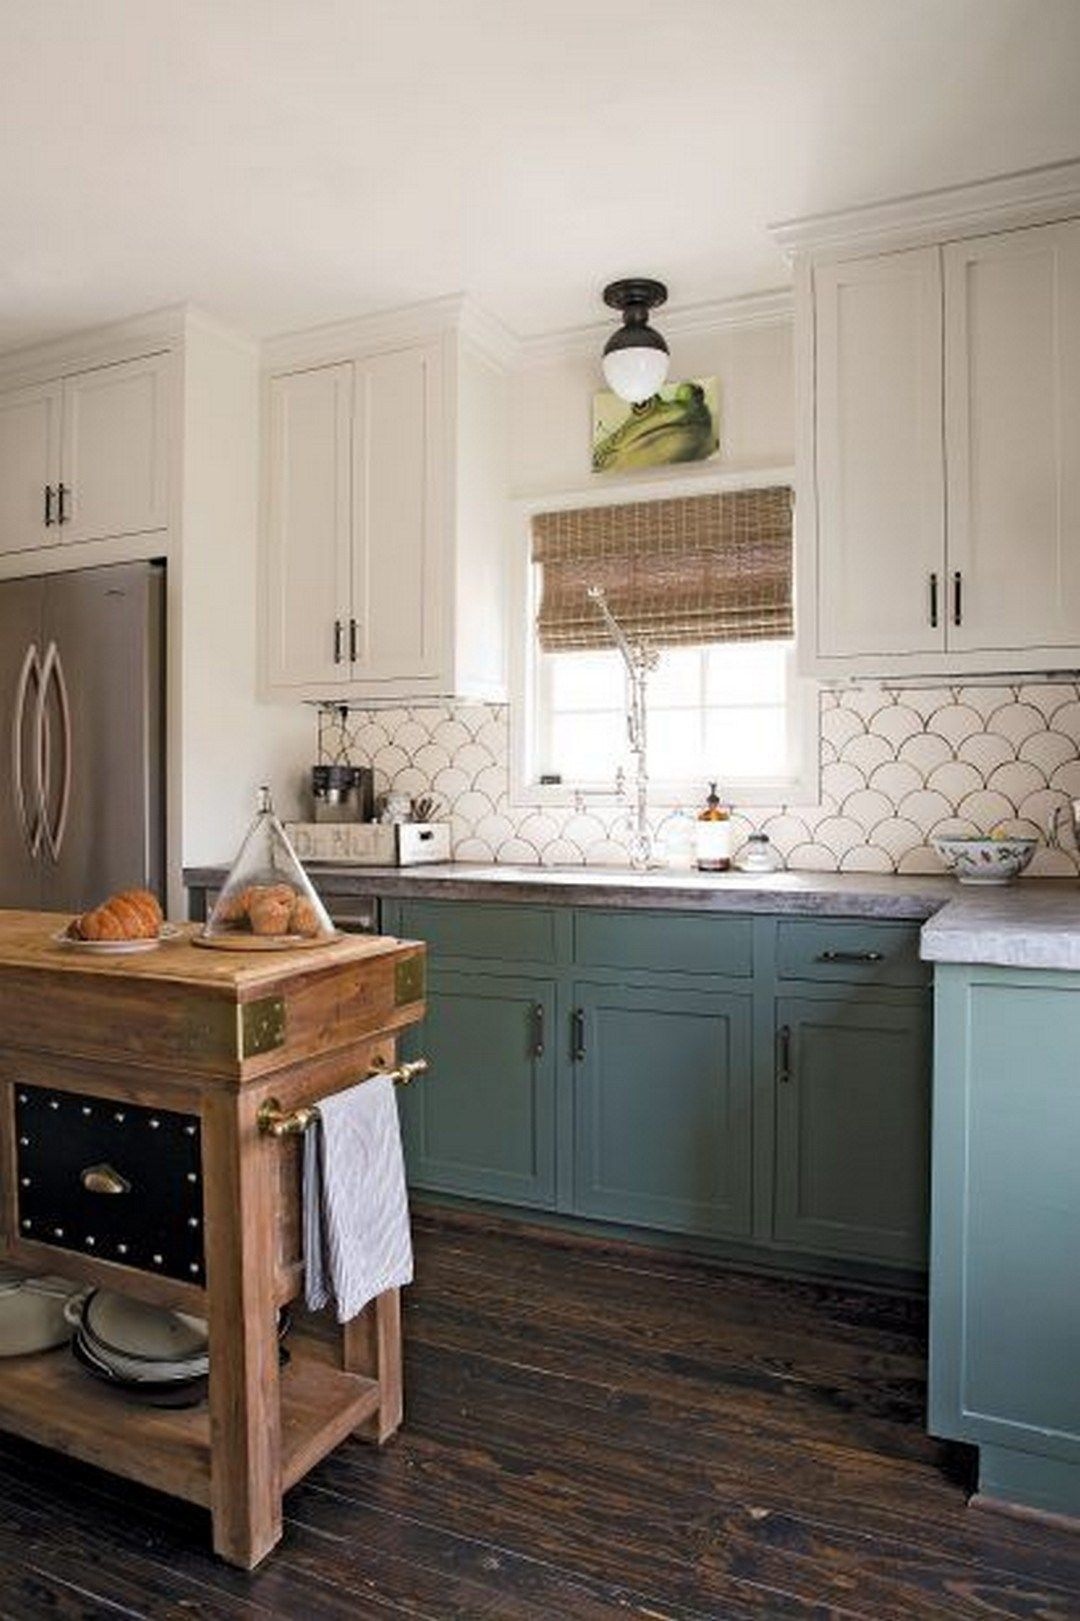 Simple and modern historic homes kitchen details pinterest